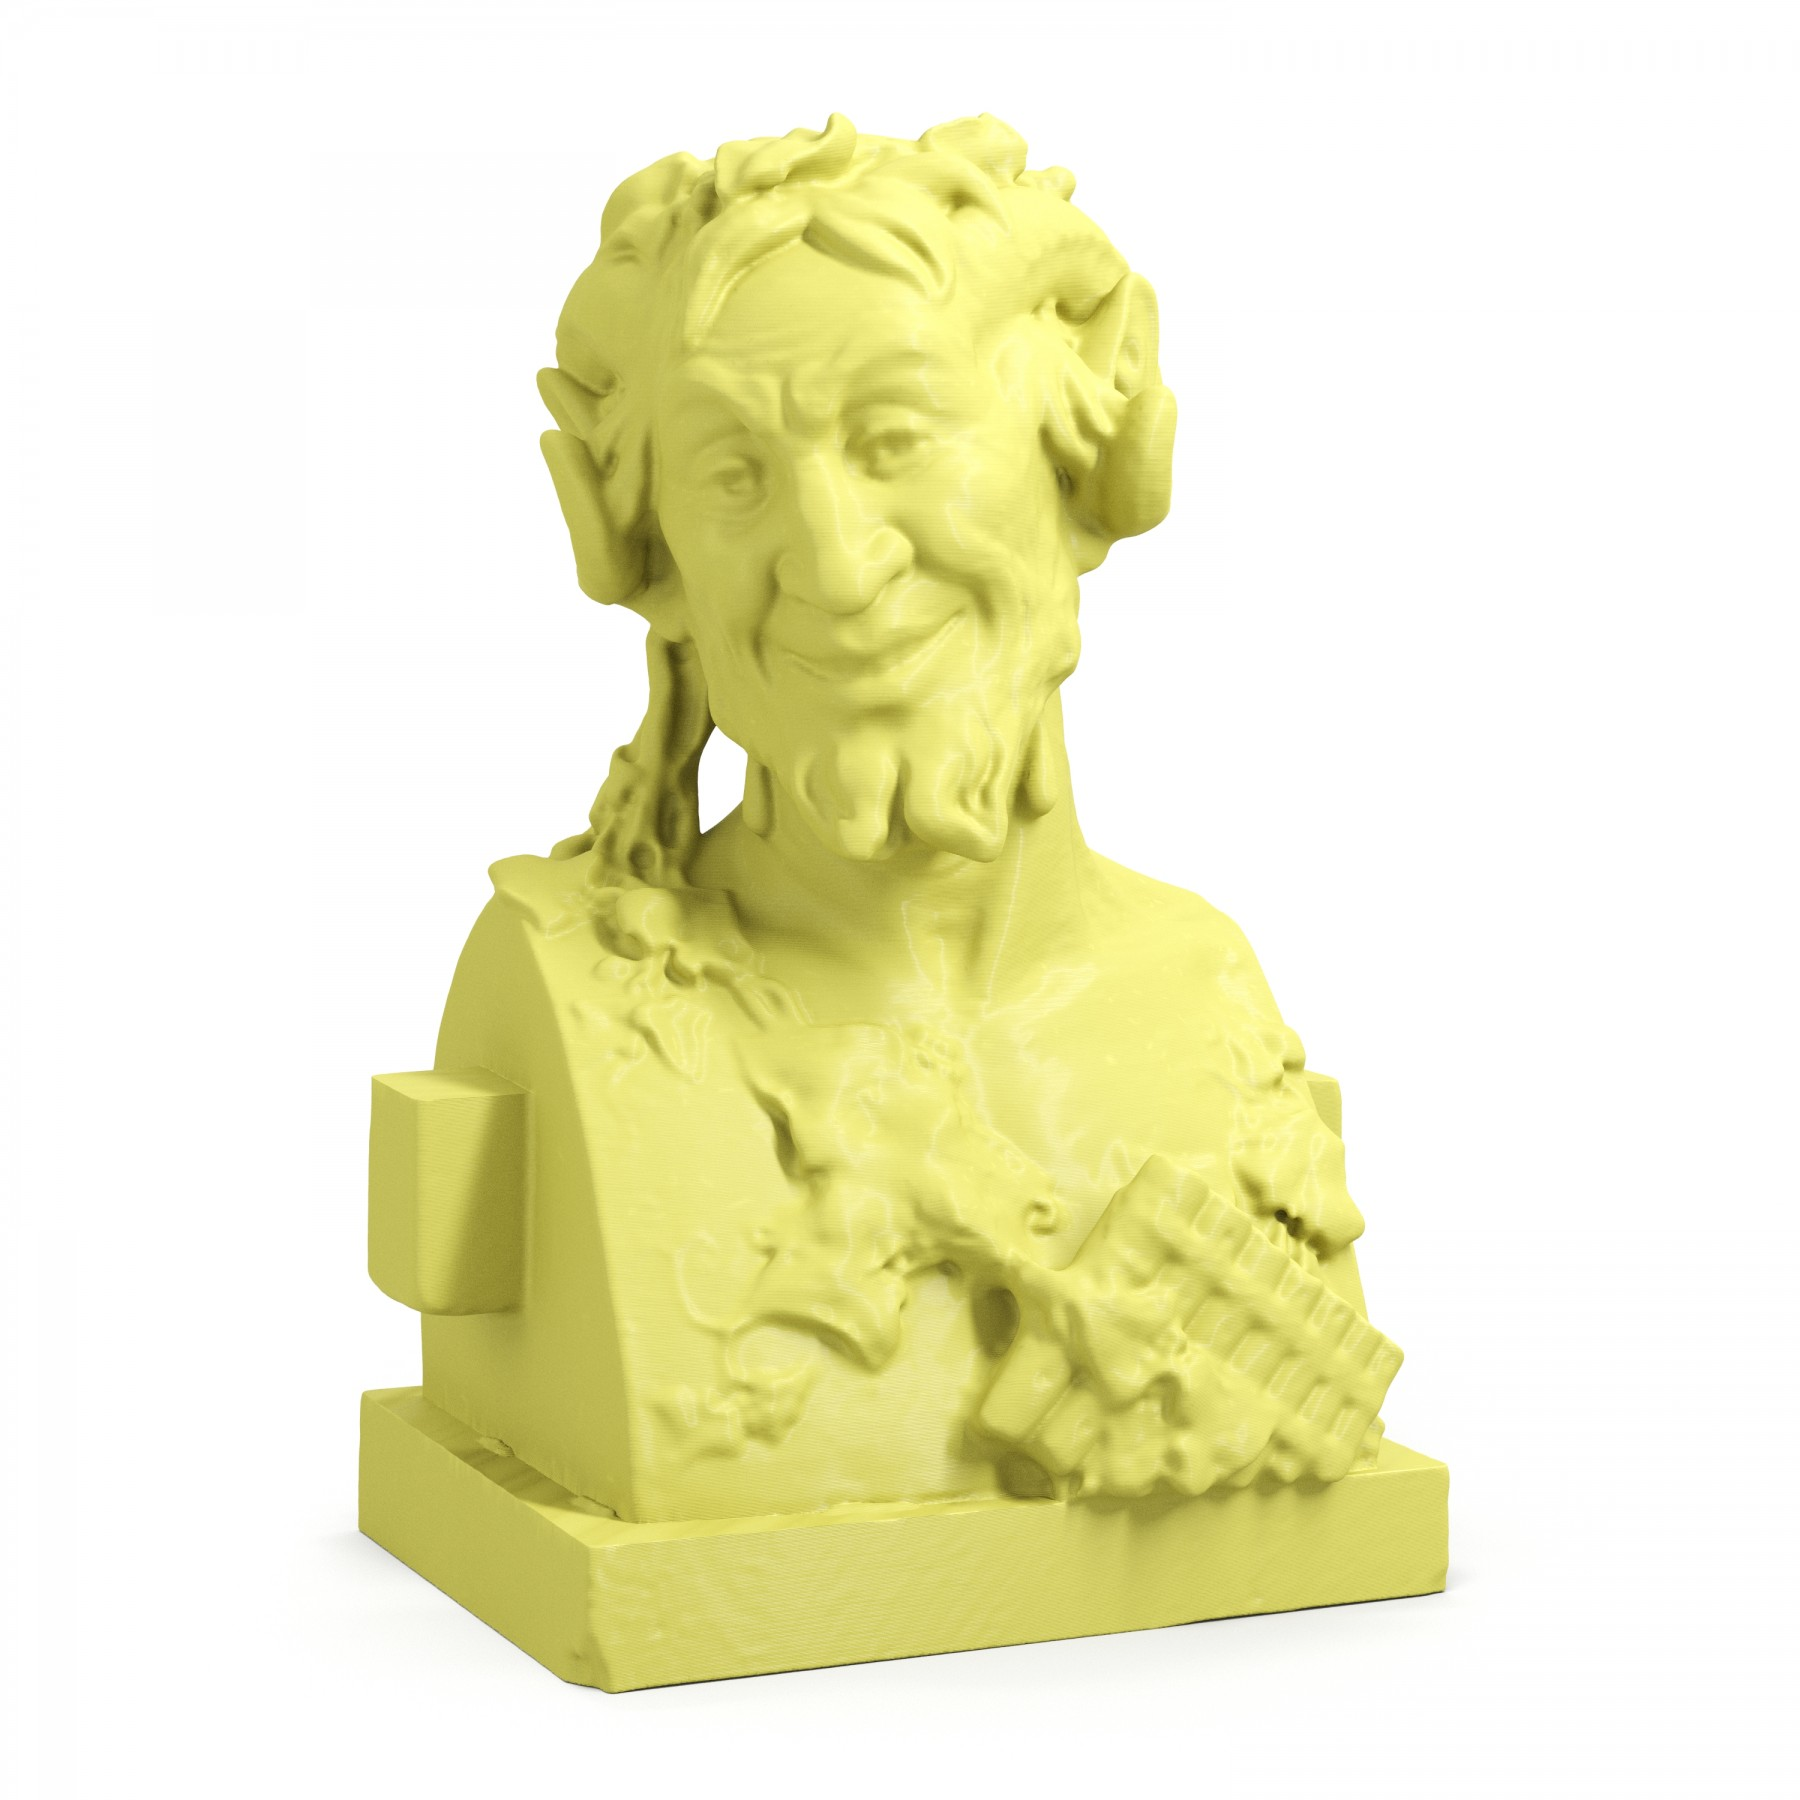 3D Printed Bust of Pan Busts Art Clone Statue - ARTFICIAL.COM